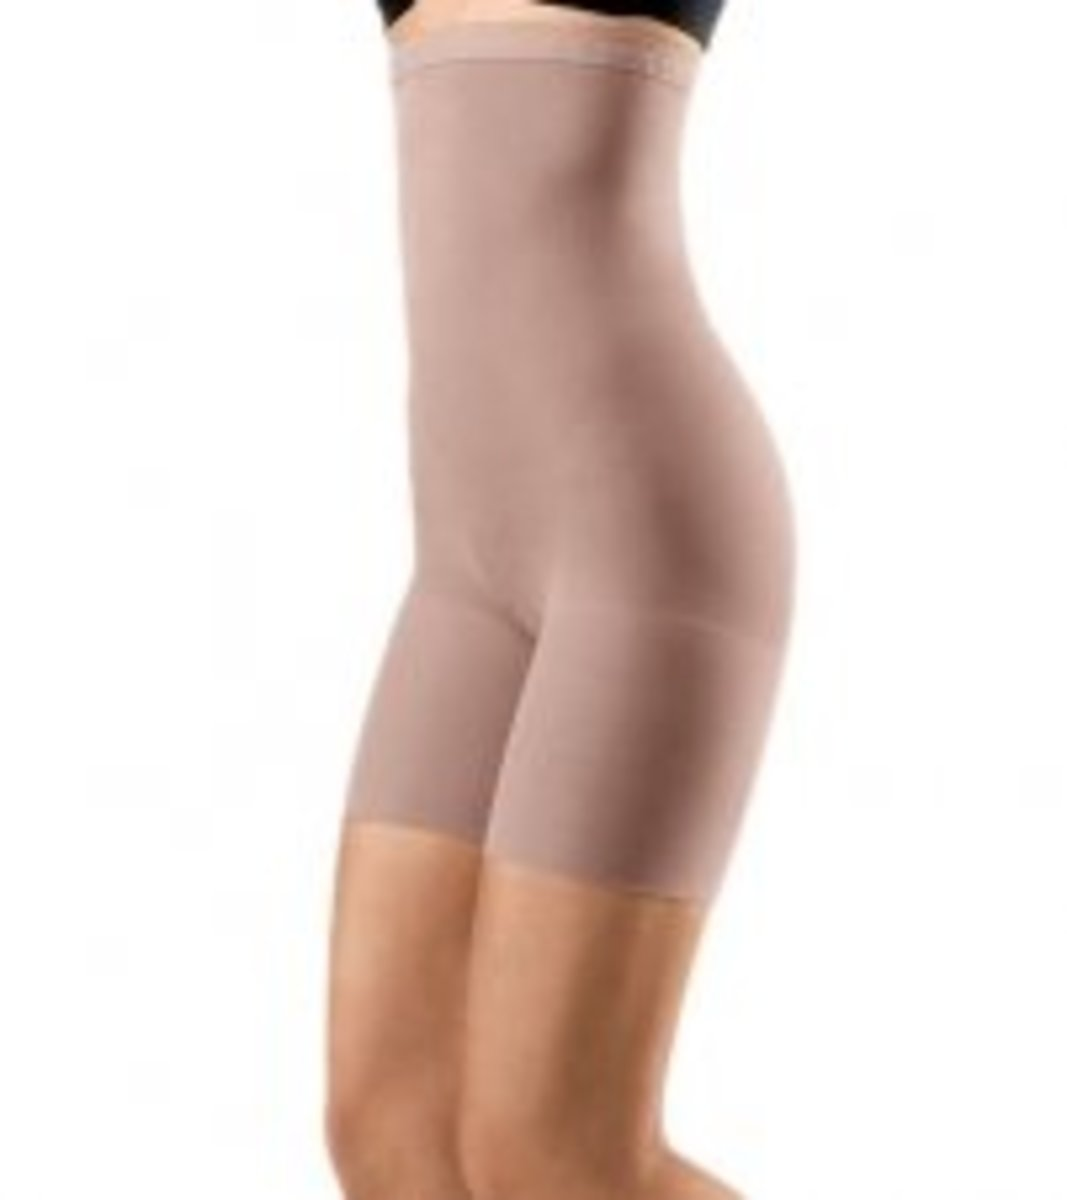 Best Shapewear: Assets Shapewear, by Sara Blakely